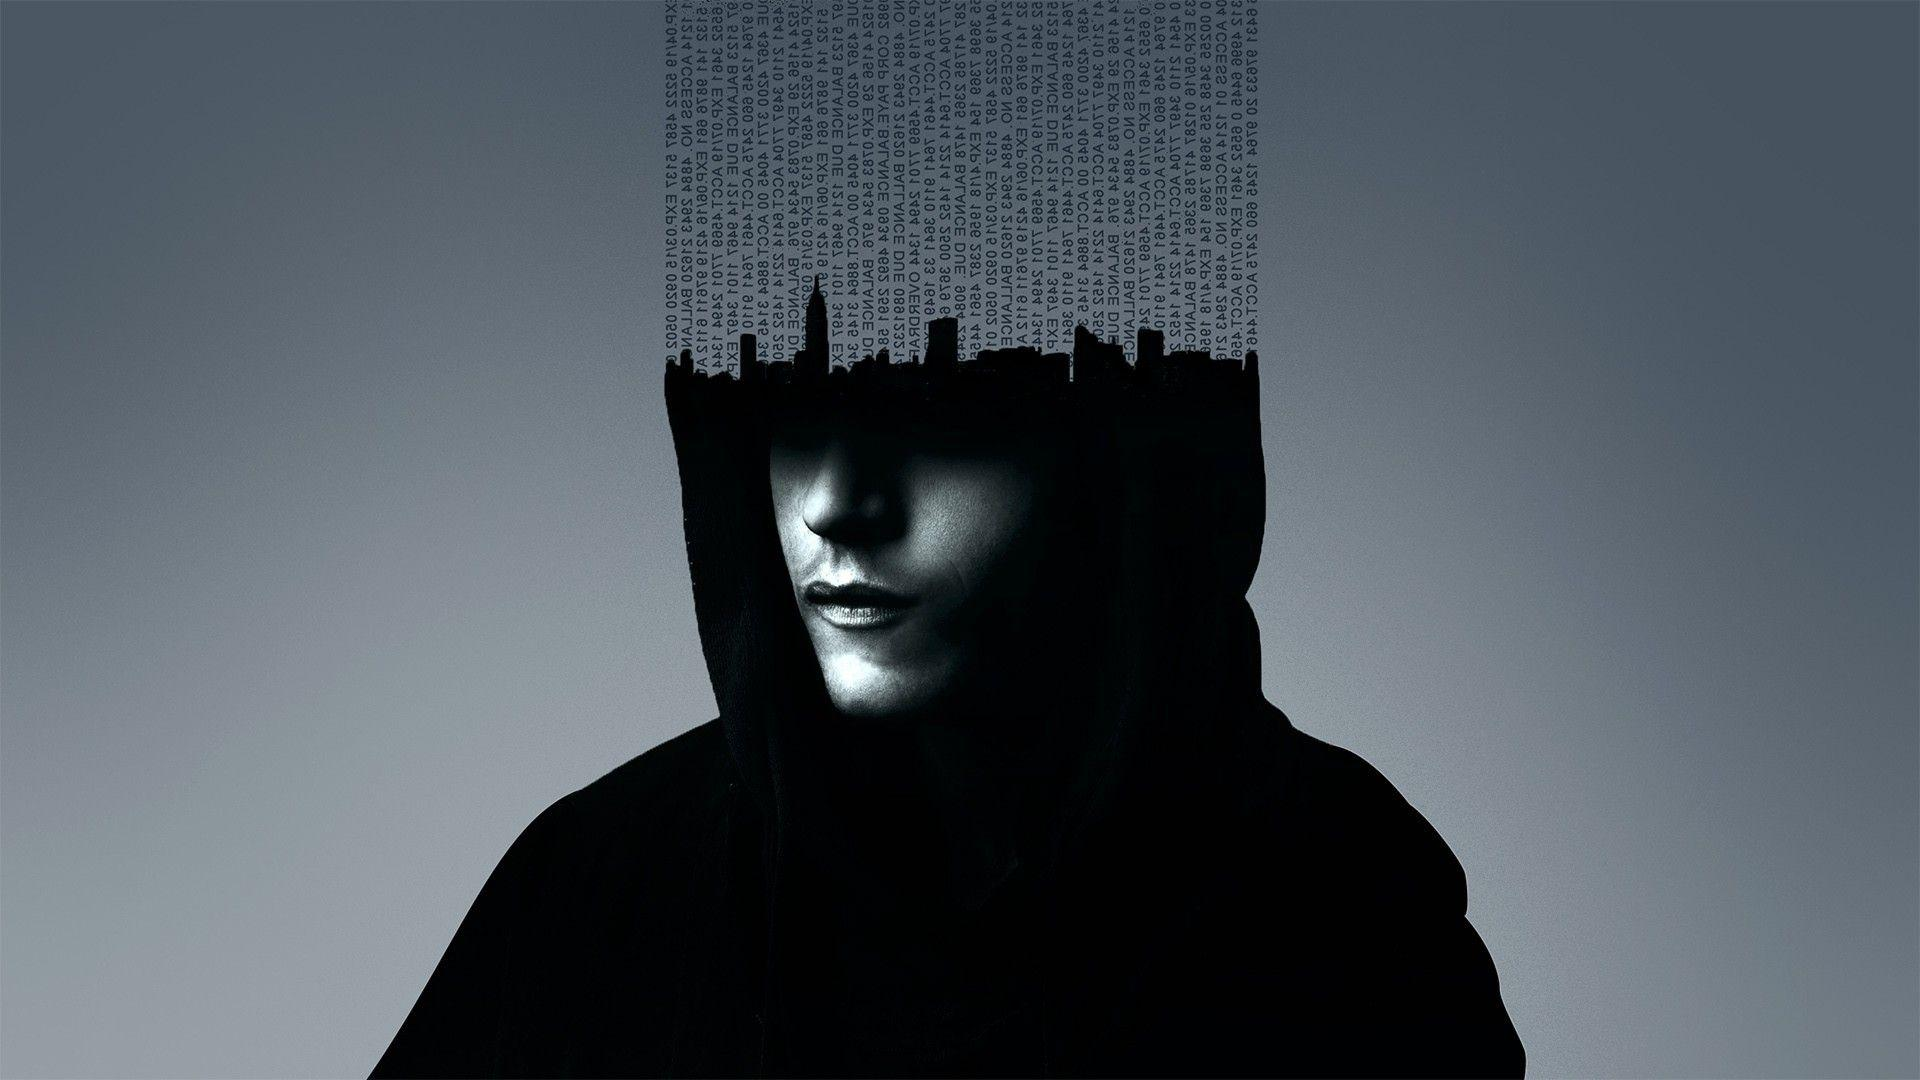 Mr robot, Robots and Wallpapers